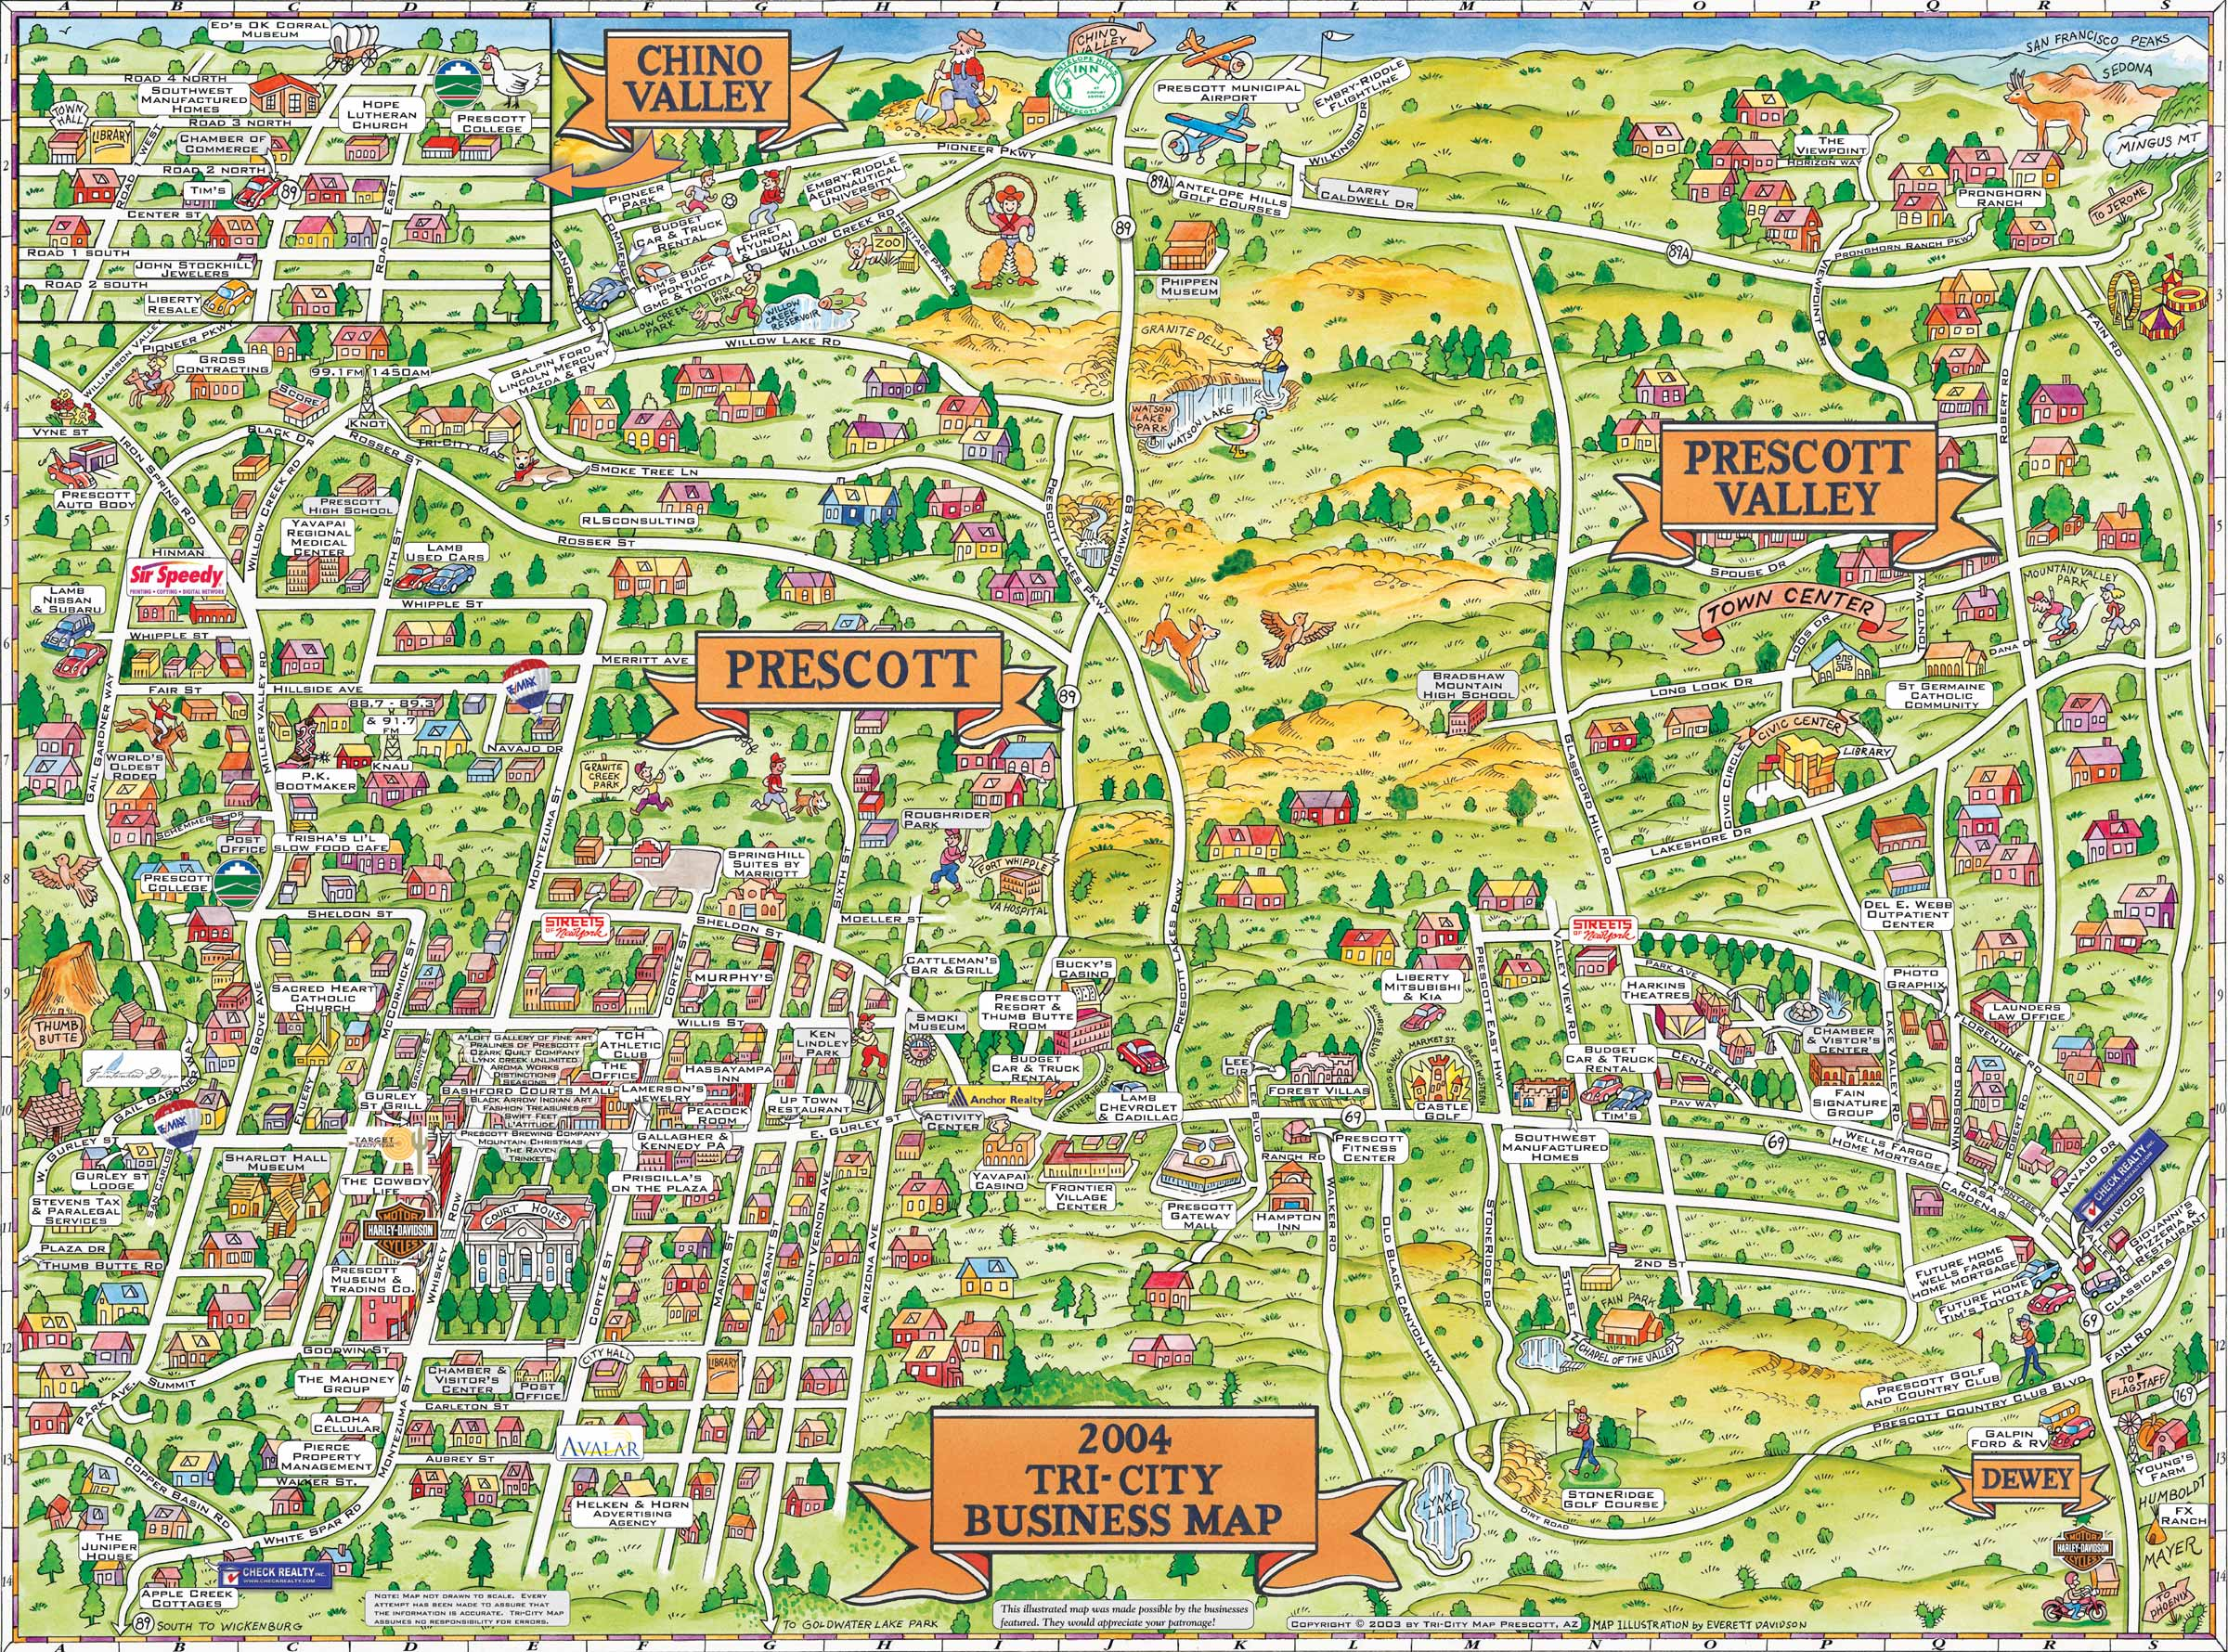 prescott prescott valley and chino valley tourist map  prescott  - prescott prescott valley and chino valley tourist map  prescott arizona •mappery